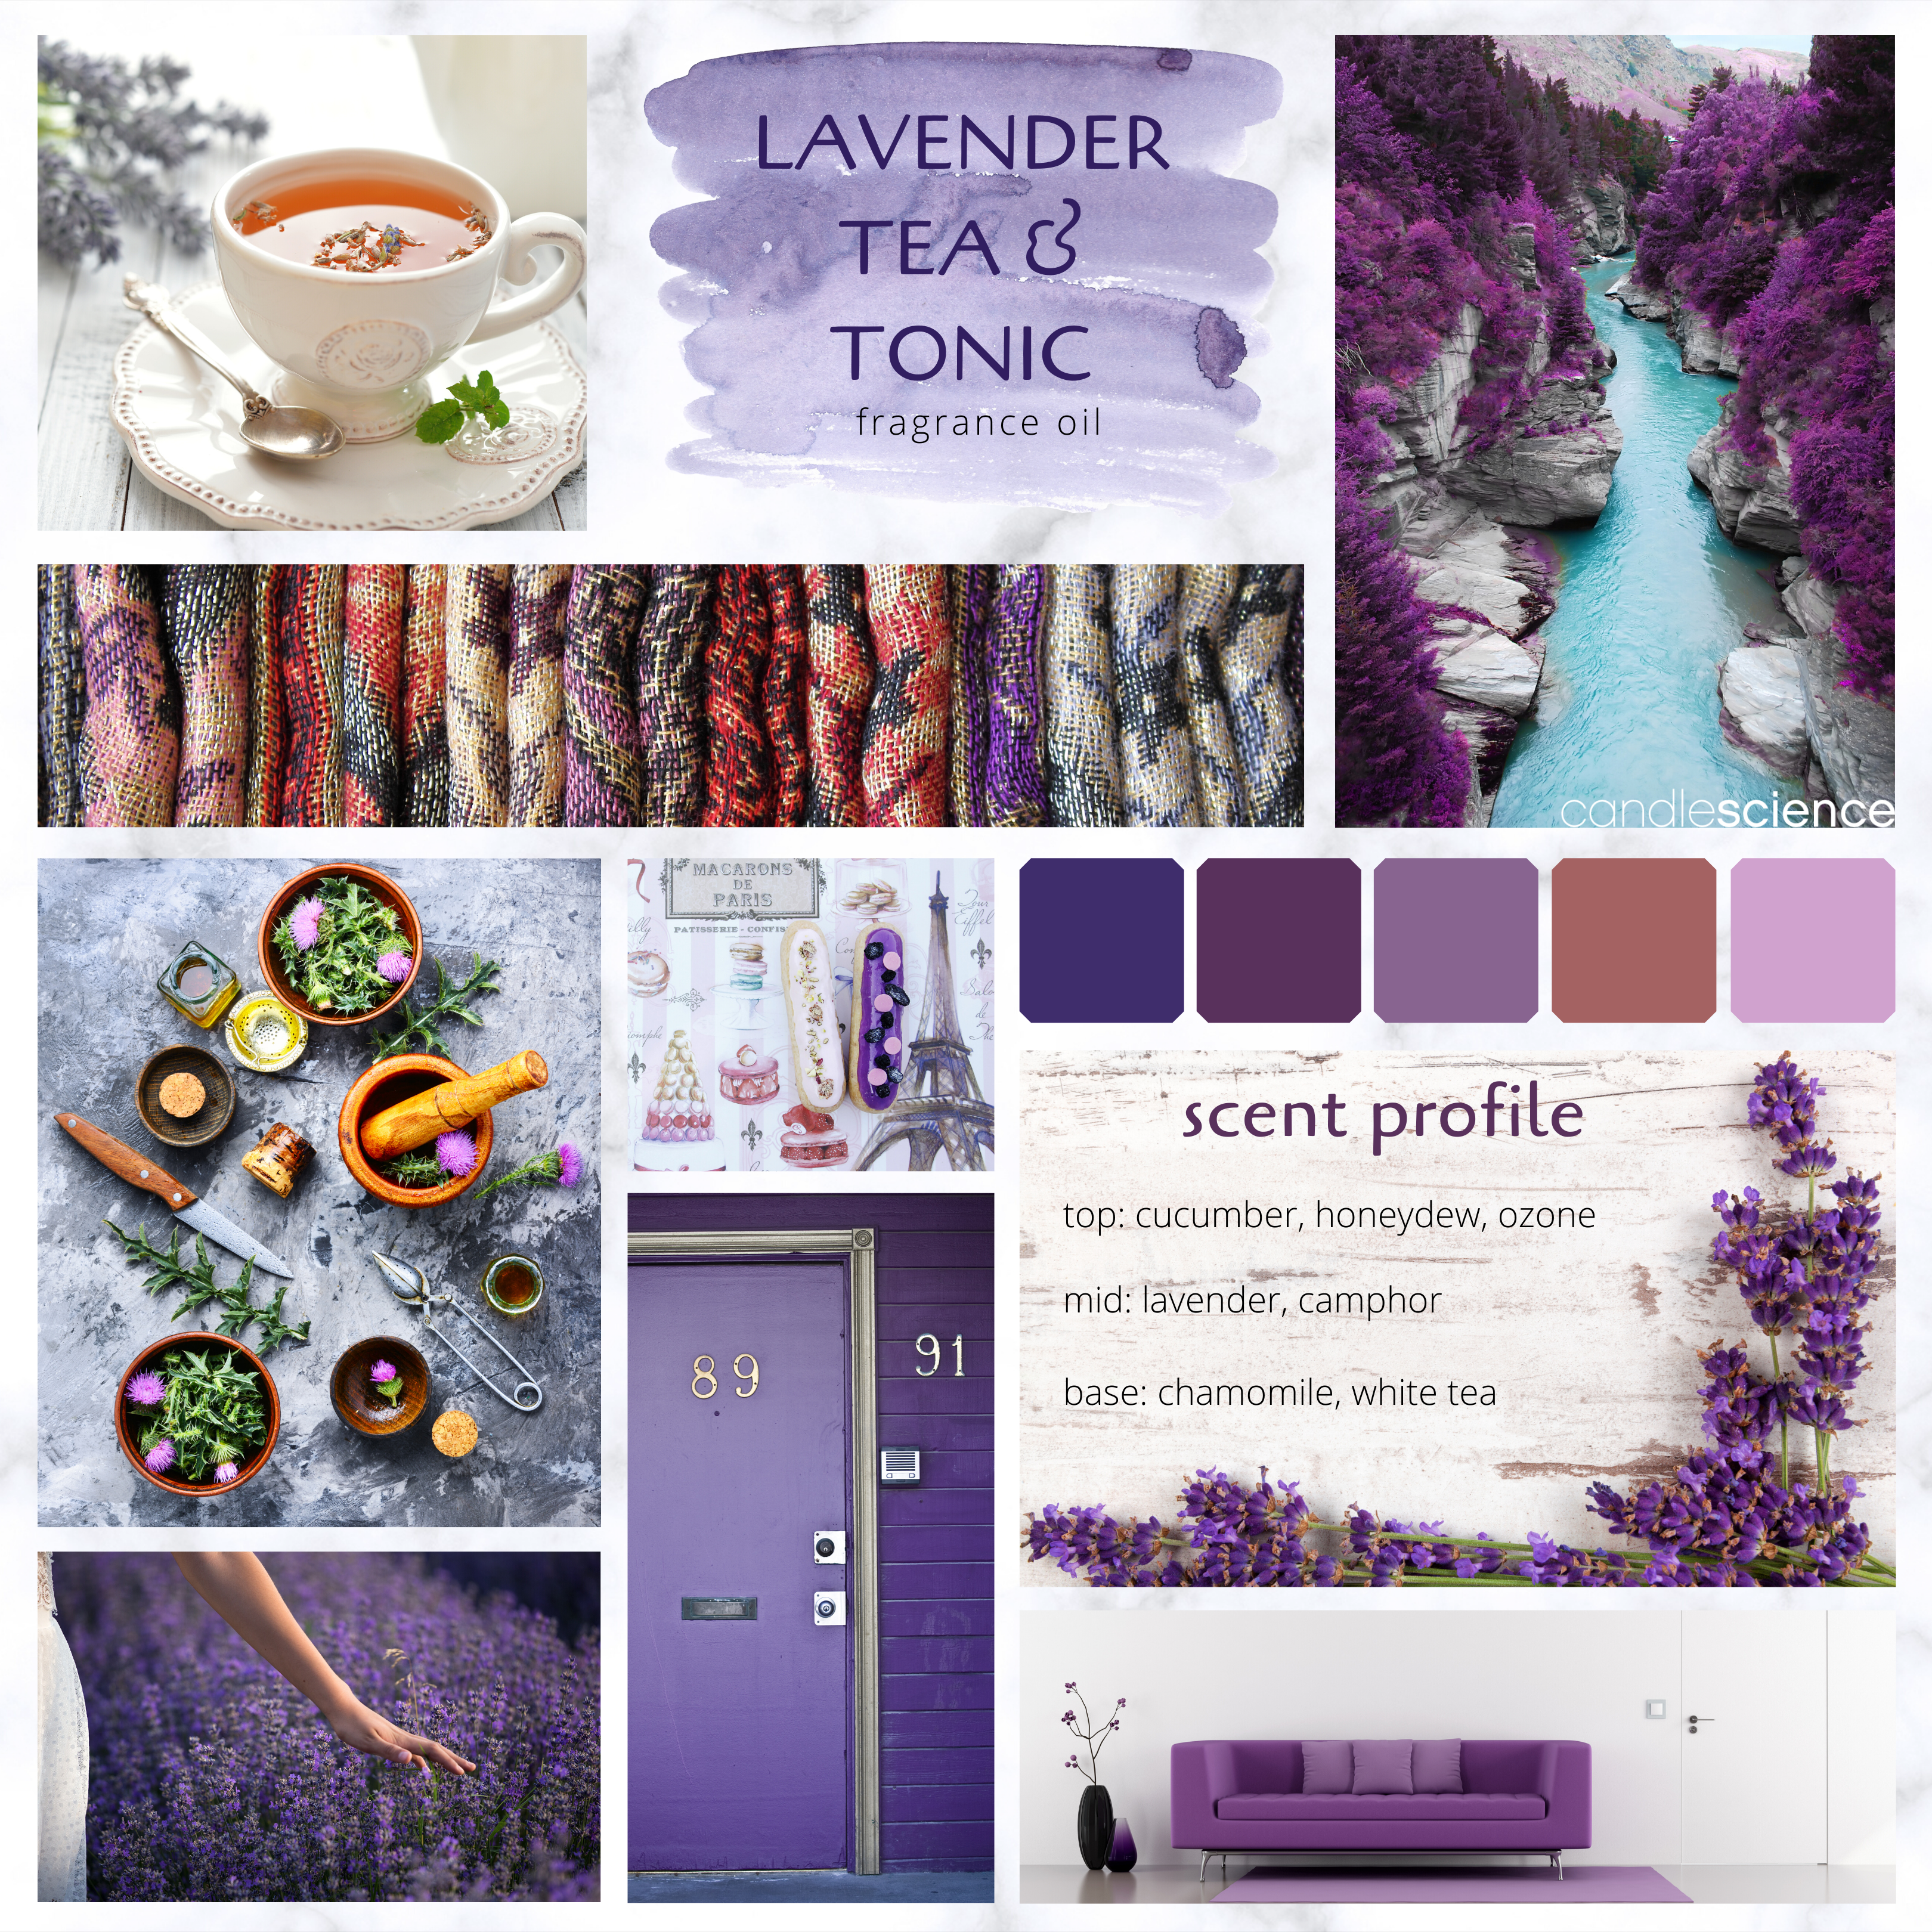 Lavender Tea and Tonic fragrance oil mood board